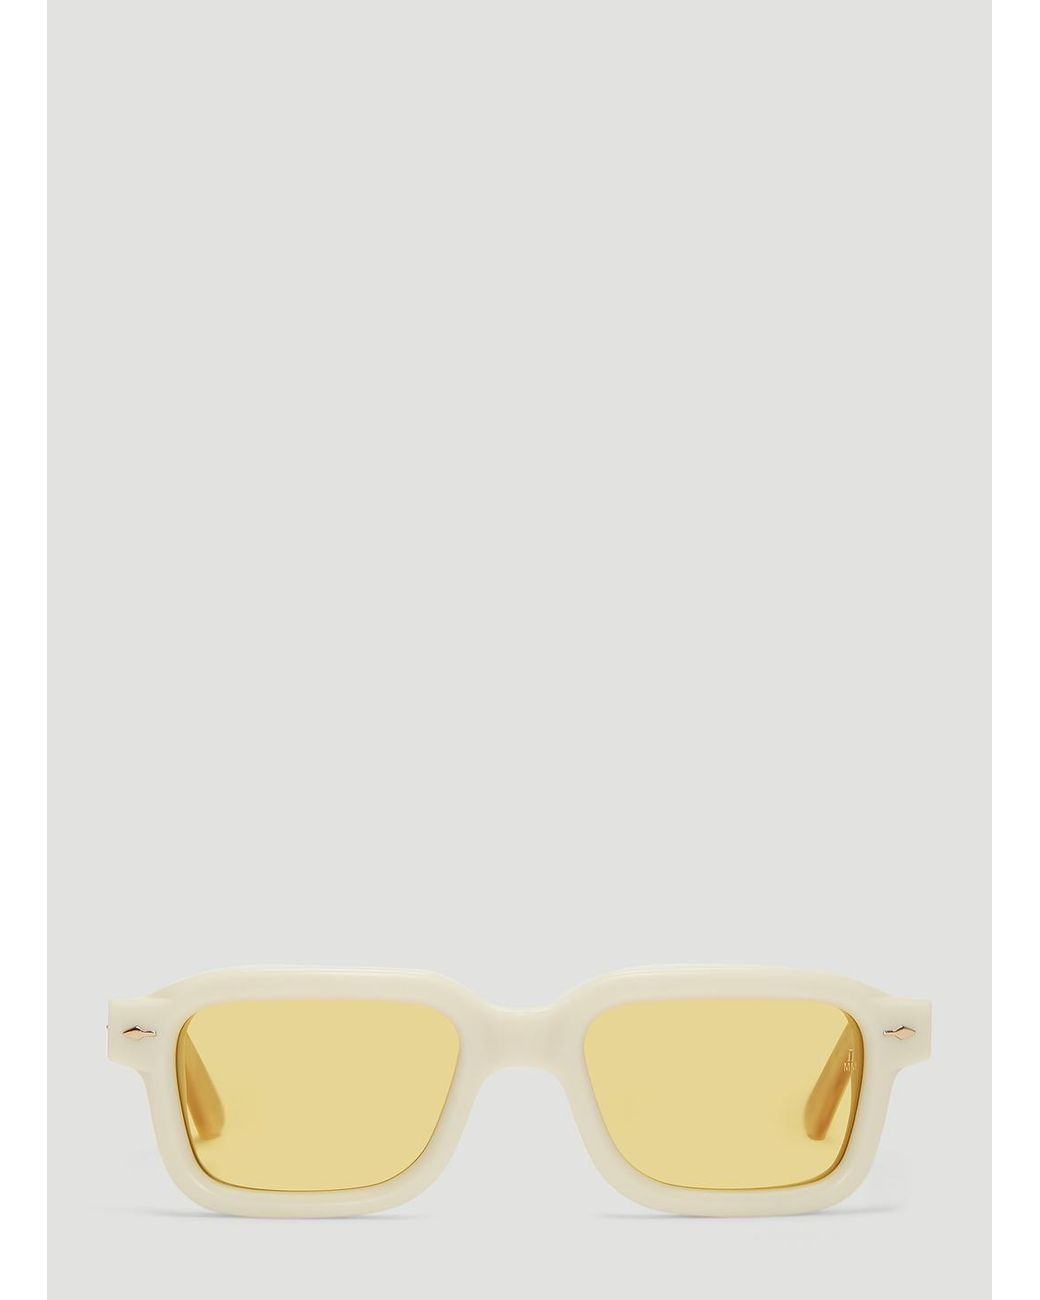 4faaefd8a10 Lyst - Jacques Marie Mage Sandro Sunglasses In Off-white in White ...